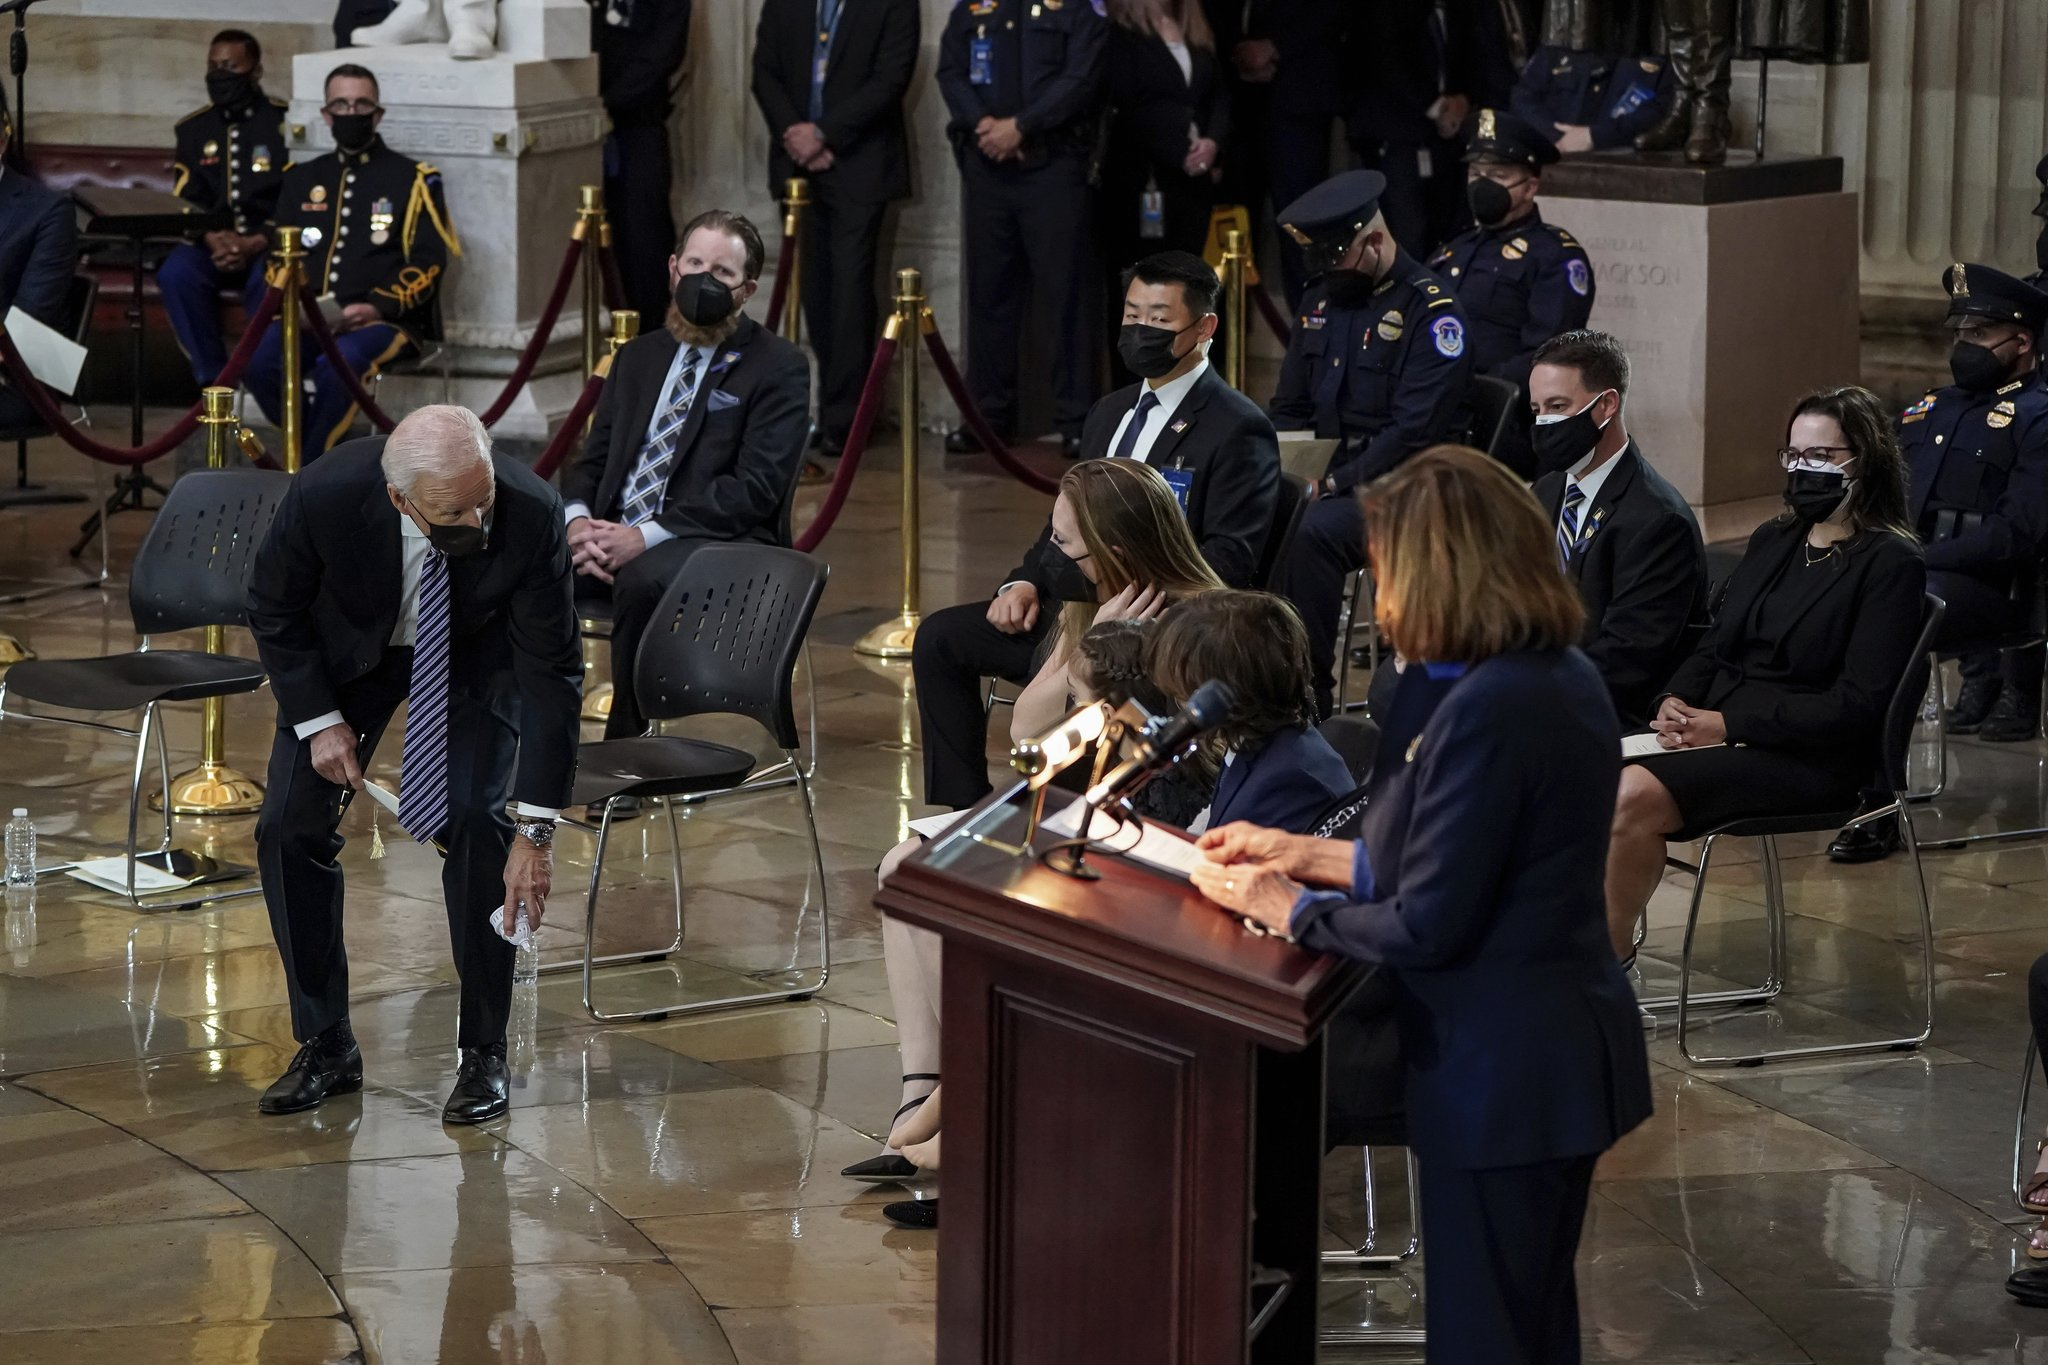 President Biden picks up a Capitol dome-shaped toy that fell to the ground during the commemoration of House Speaker Nancy Pelosi.  AP = Yonhop News